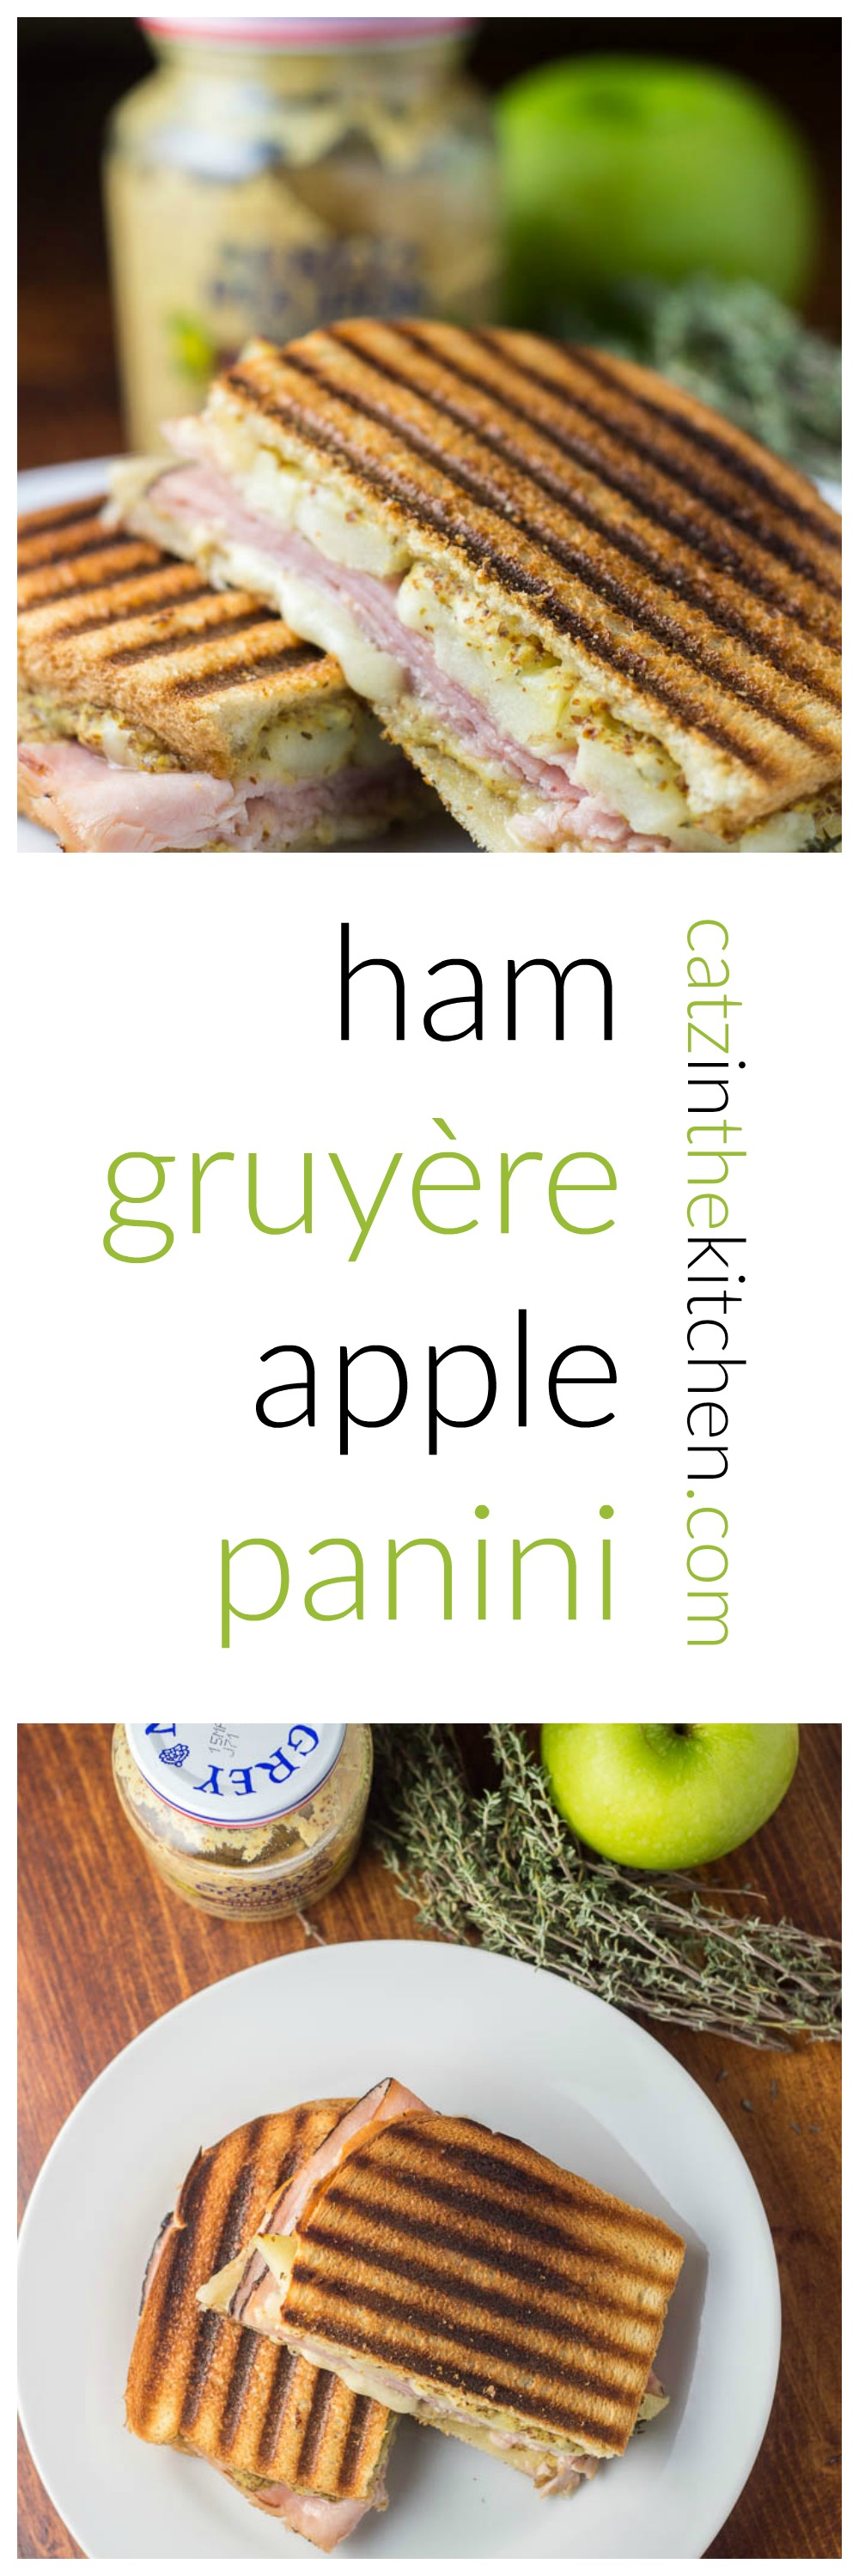 Ham, Gruyère, & Apple Panini | Catz in the Kitchen | catzinthekitchen.com | #sandwich #panini #Gruyère